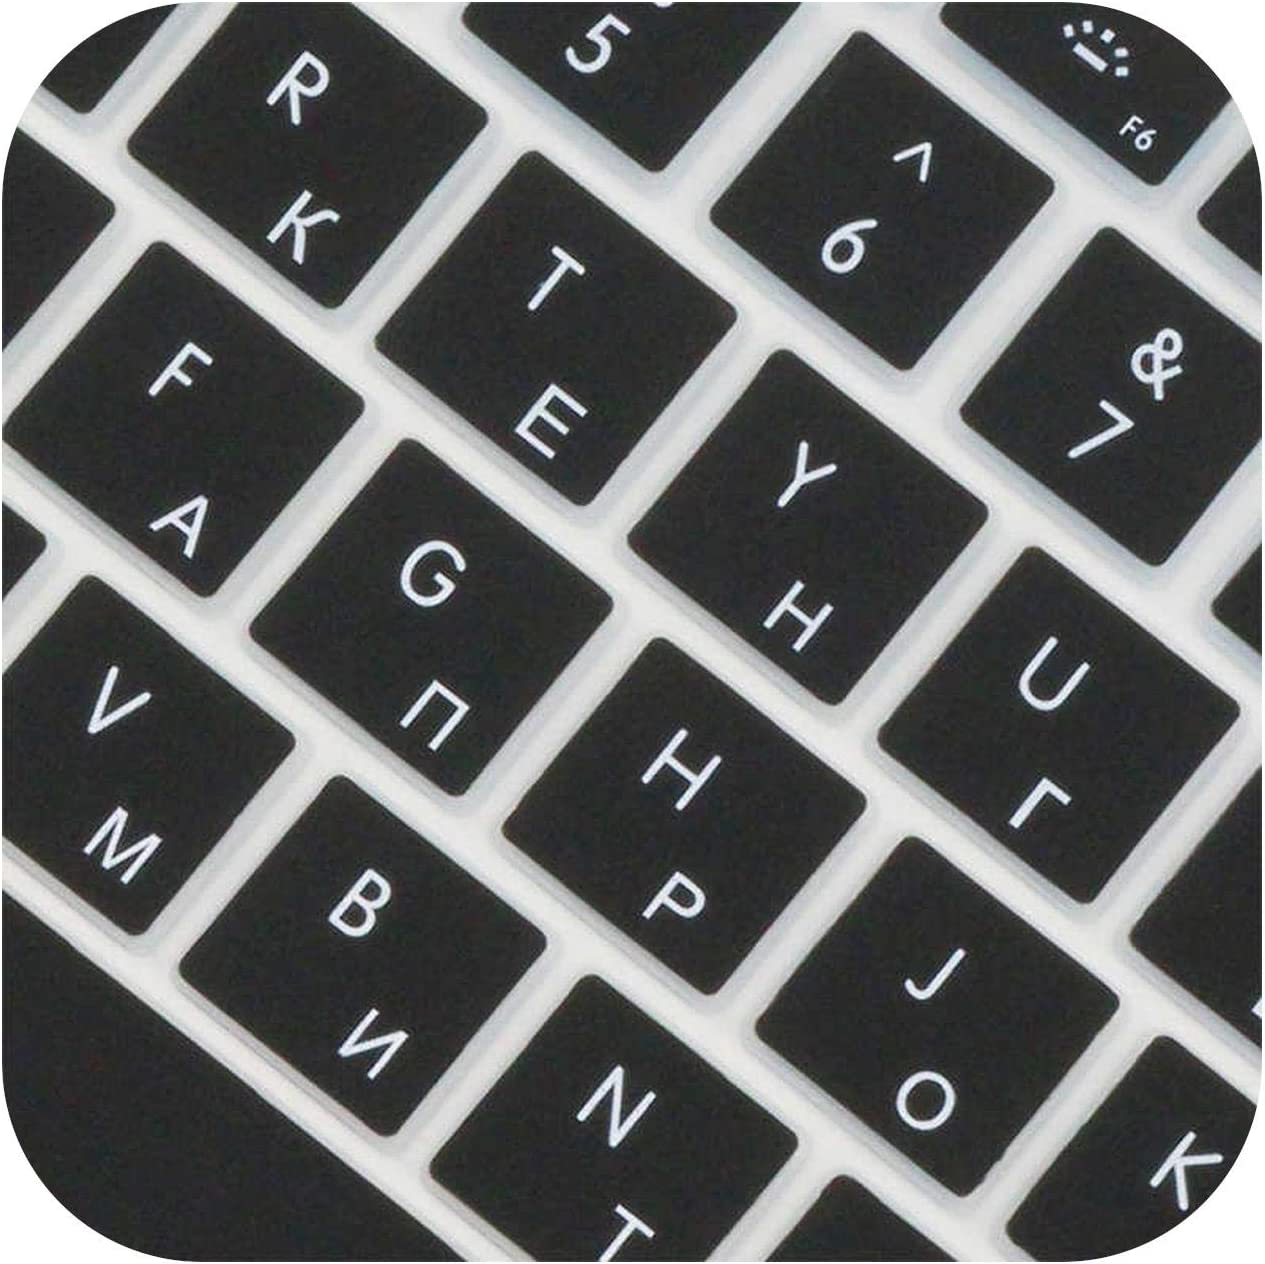 All-Equal 14 Color EU Russian Language Letter Keyboard Cover Sticker for MacBook for Air 13 Pro 13 15 17 Retina Sticker-Black